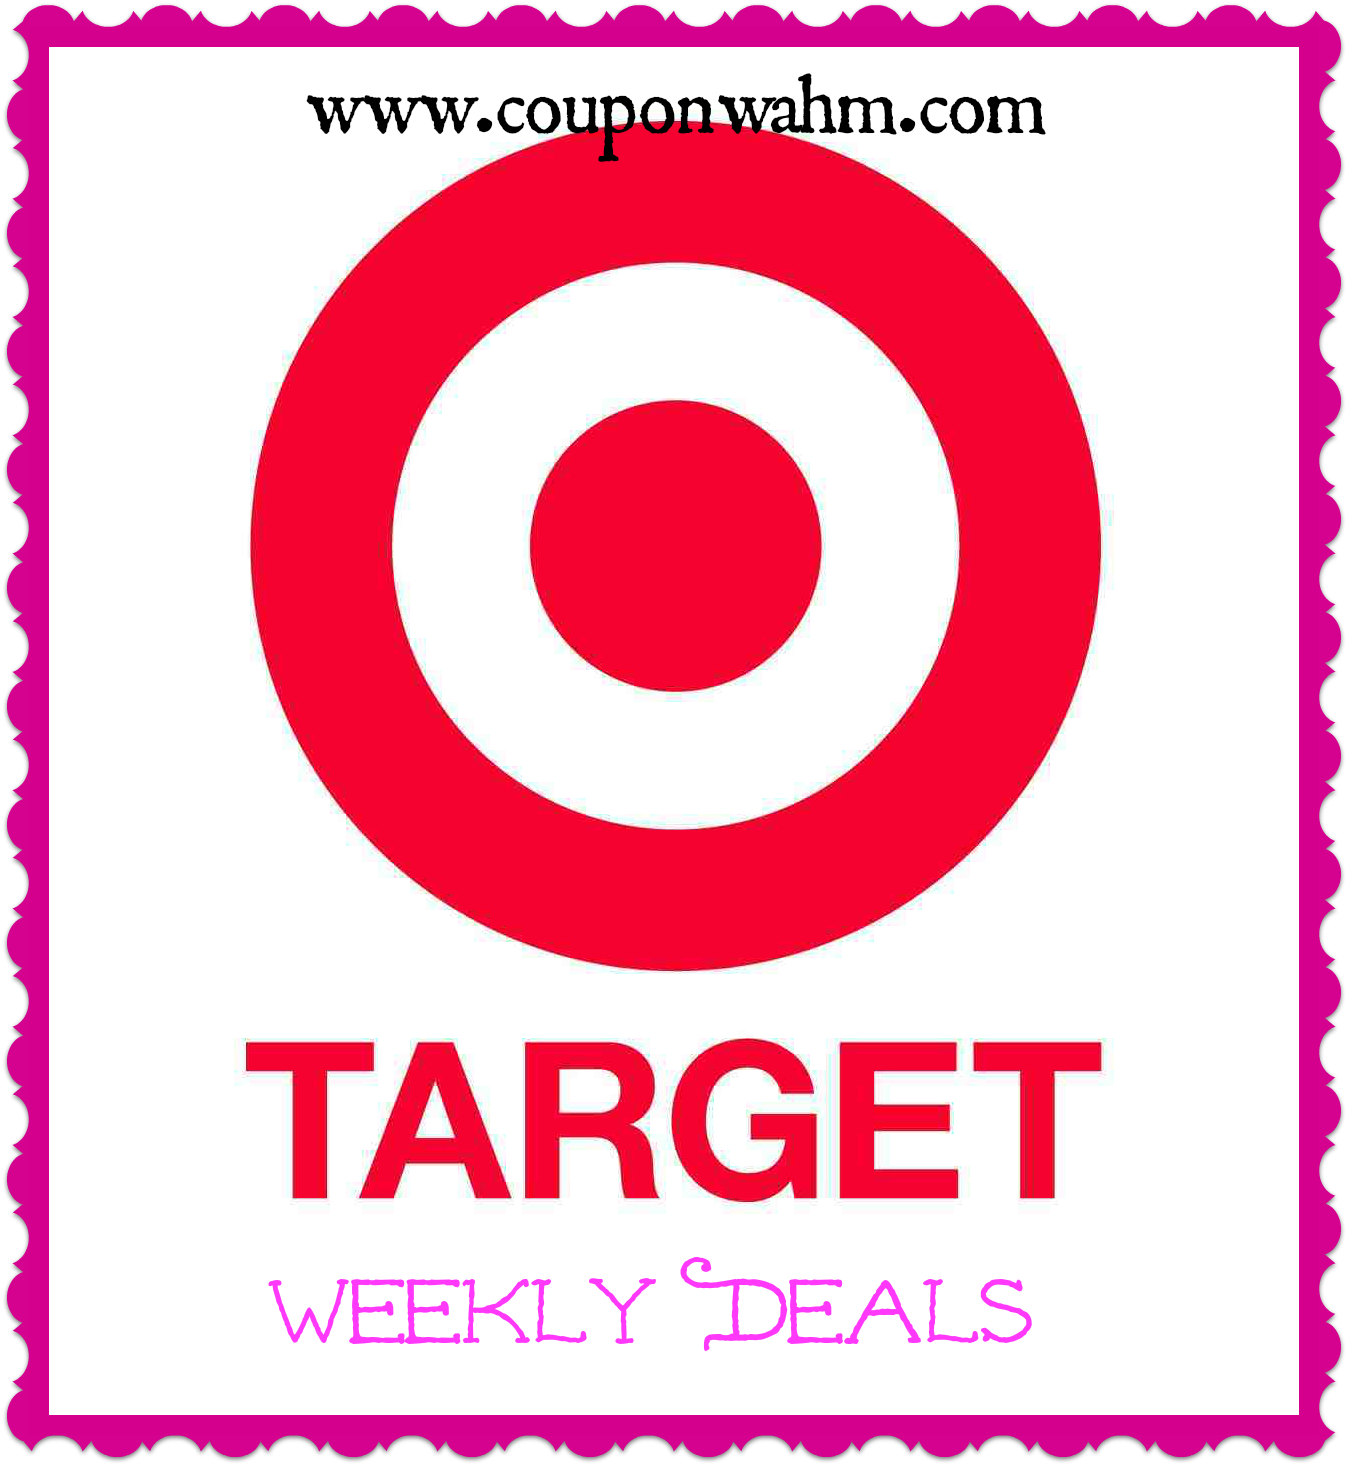 Best Target Deals Week Ending 8/7/15